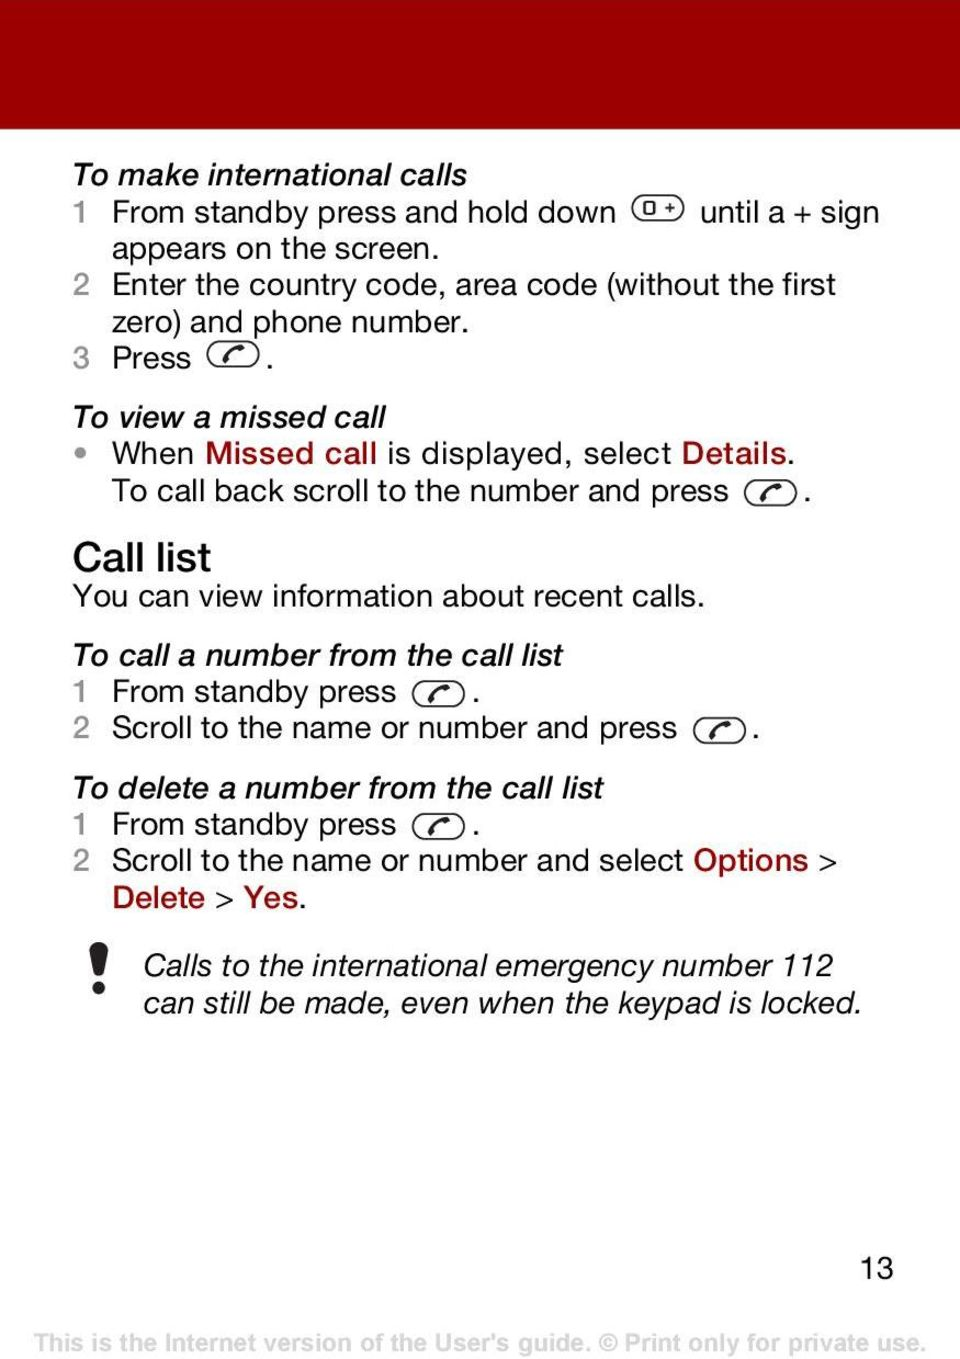 To call back scroll to the number and press. Call list You can view information about recent calls. To call a number from the call list 1 From standby press.